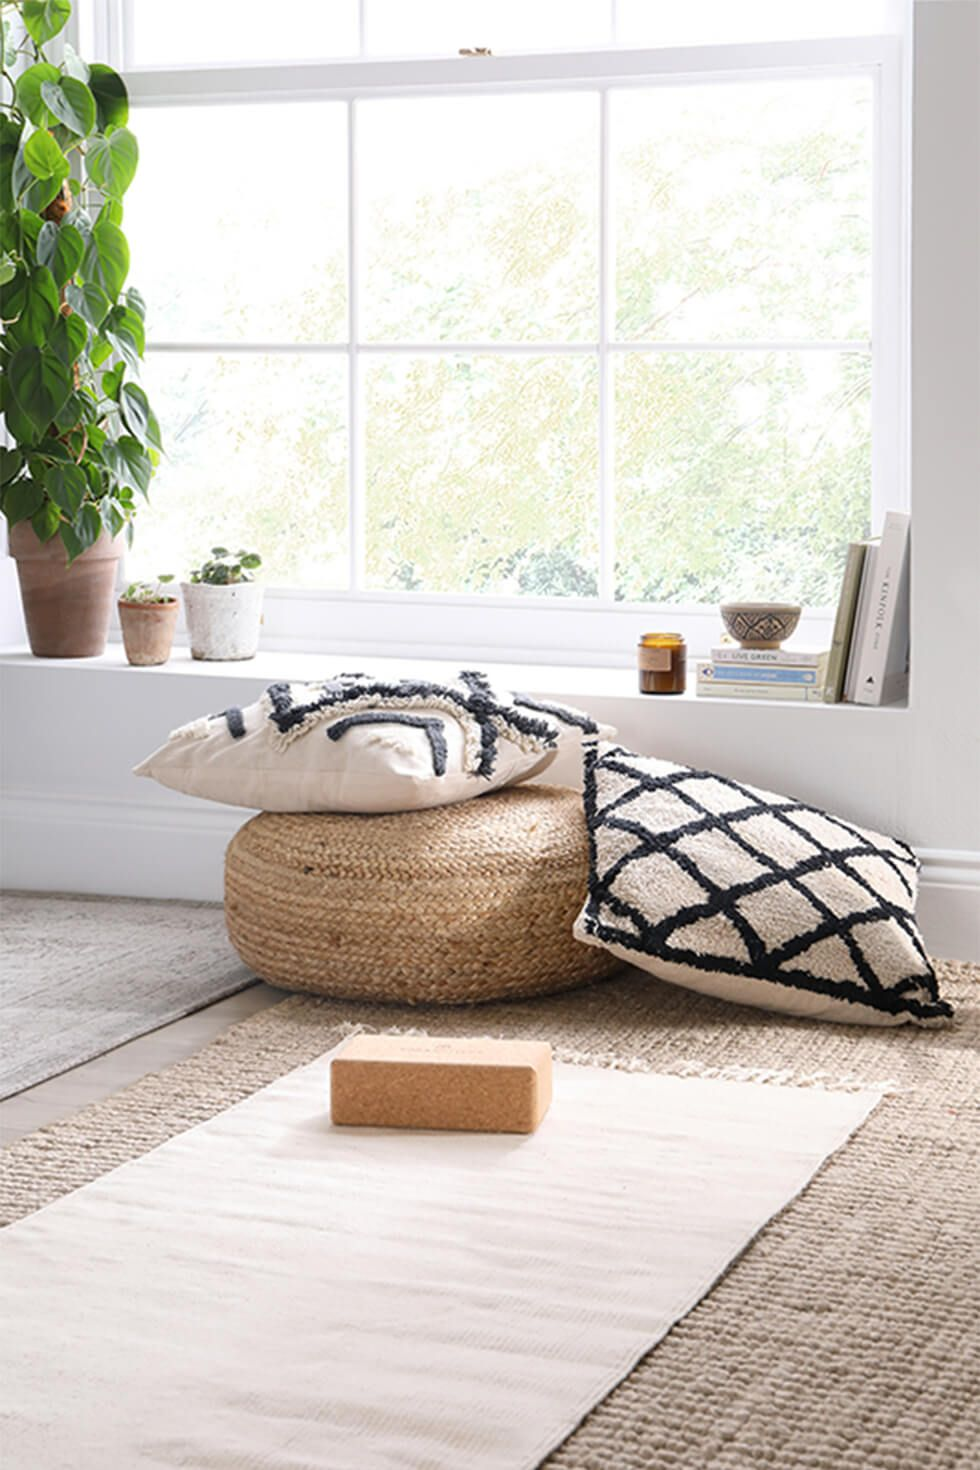 Relaxation nook with cushions and yoga accessories